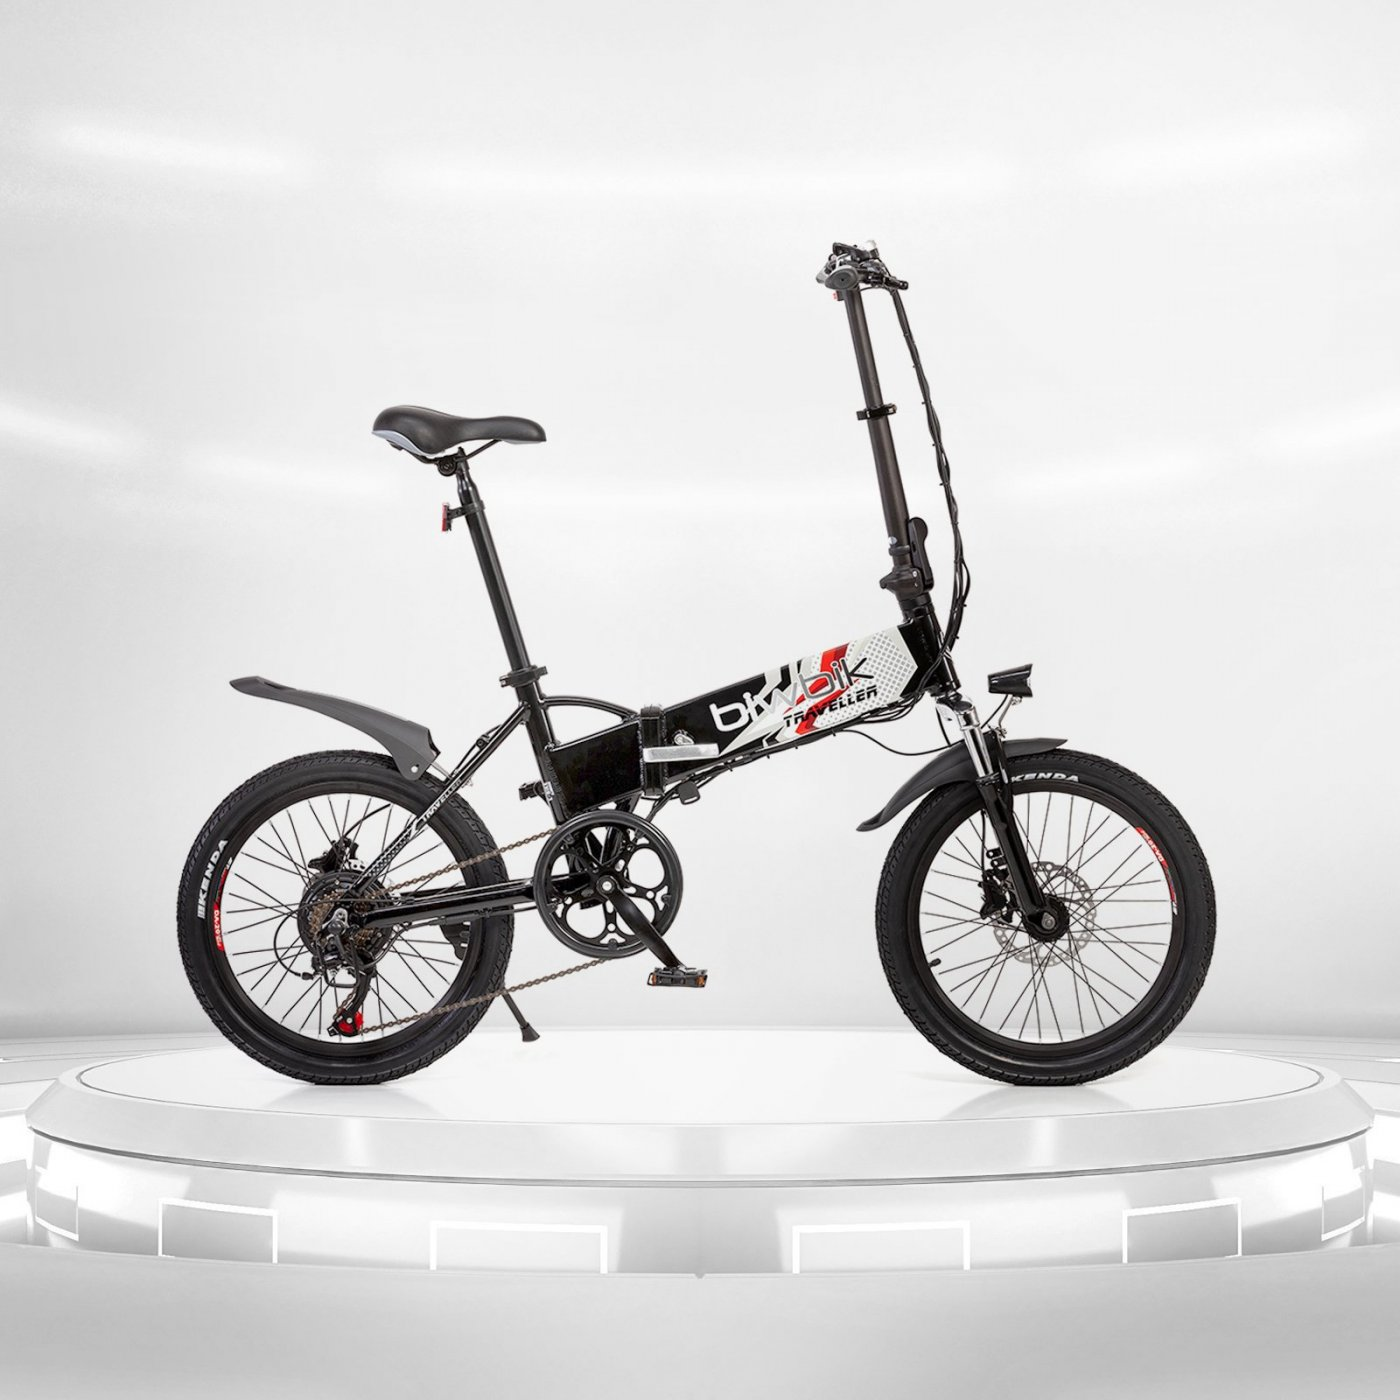 Biwbik Traveller black folding electric bike